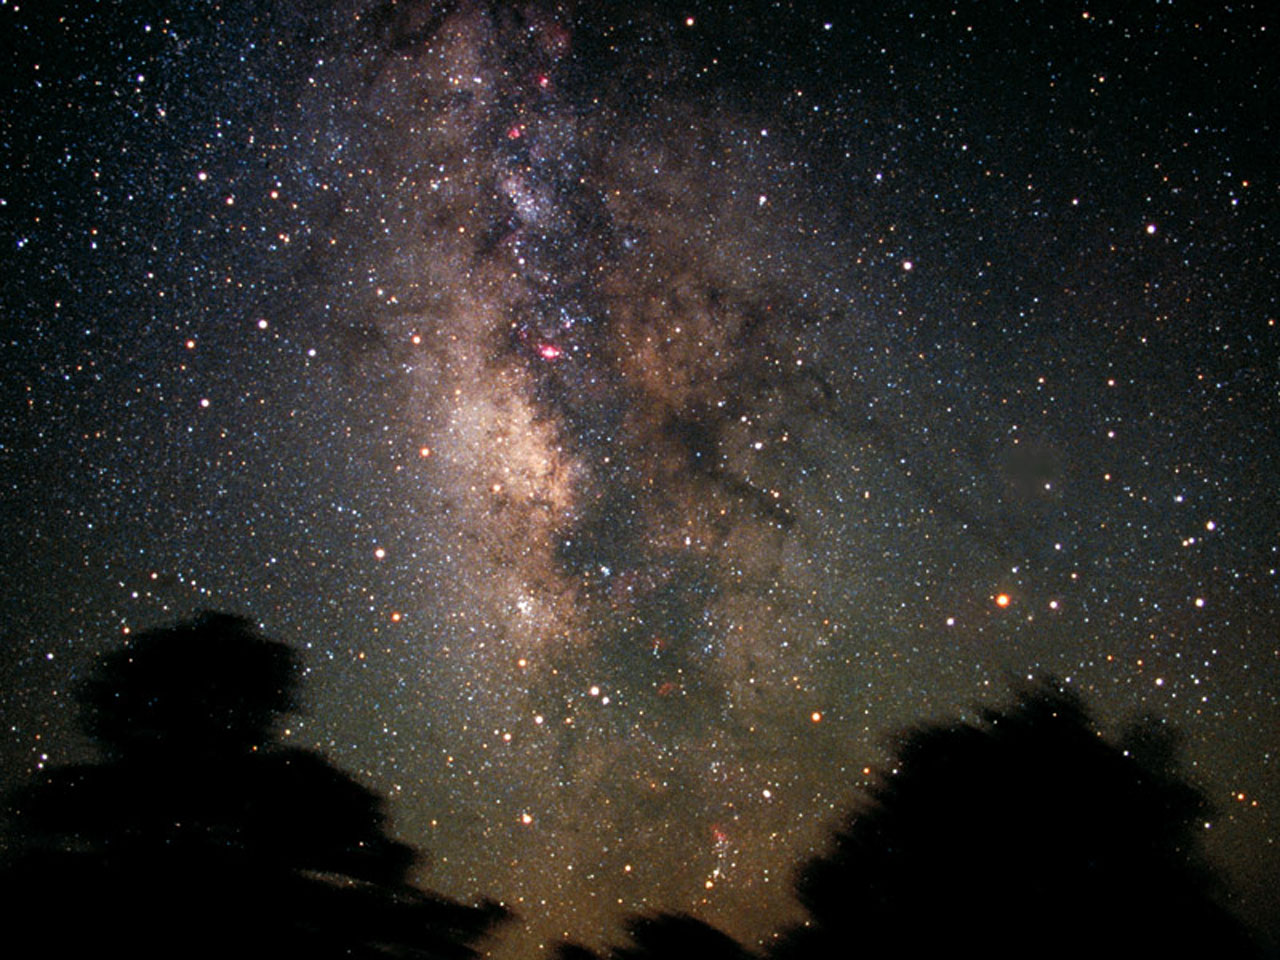 The Milky Way and Sagittarius Constellation